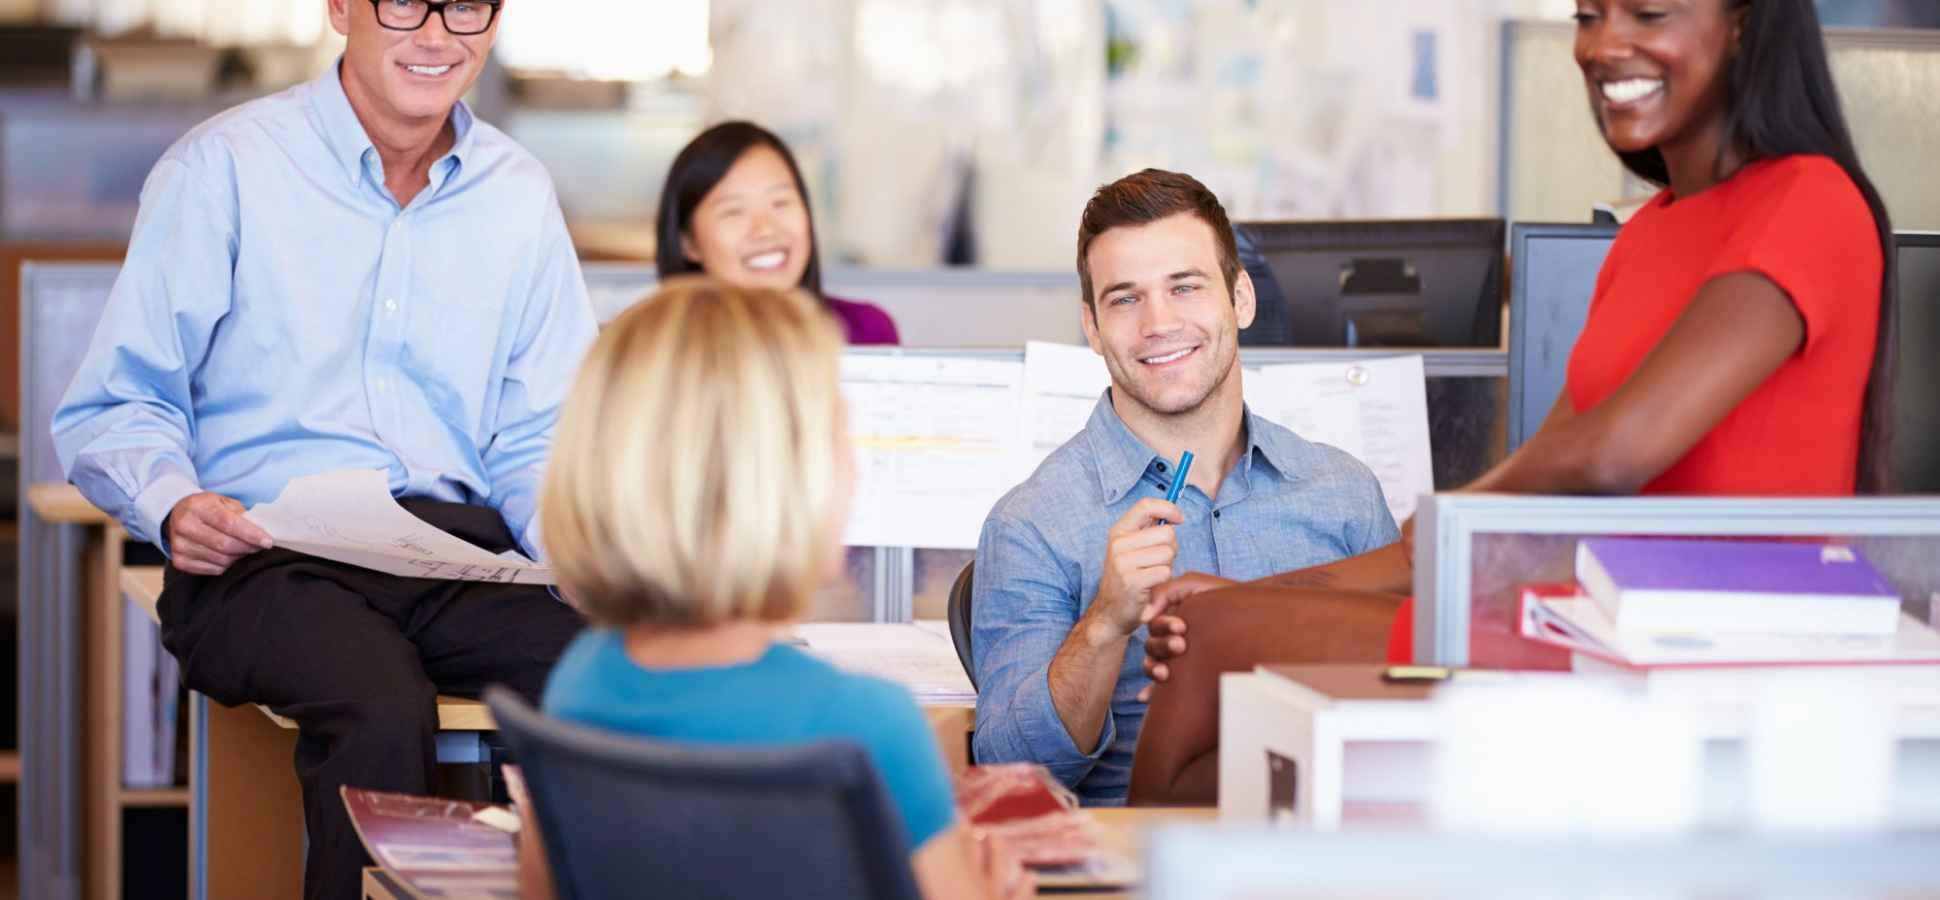 Don't Call Us Employees! - How Corporate Culture Impacts Your Internal Team and the Retaining of Employees